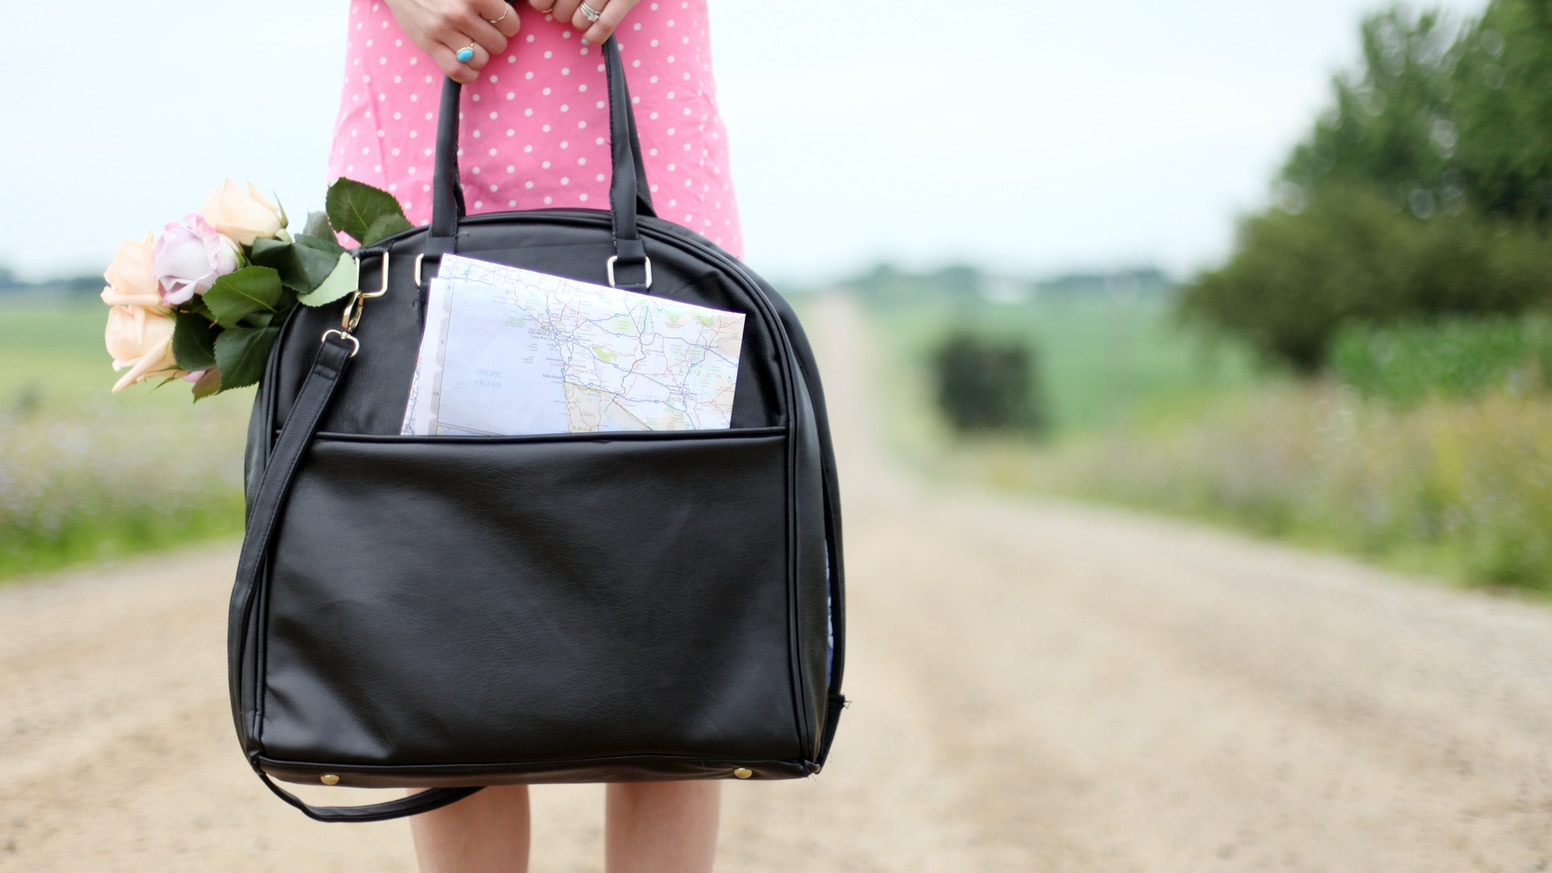 Gogo Tote Is A Toiletries Bag For Fashion Conscious Women That Enables Them To Pack